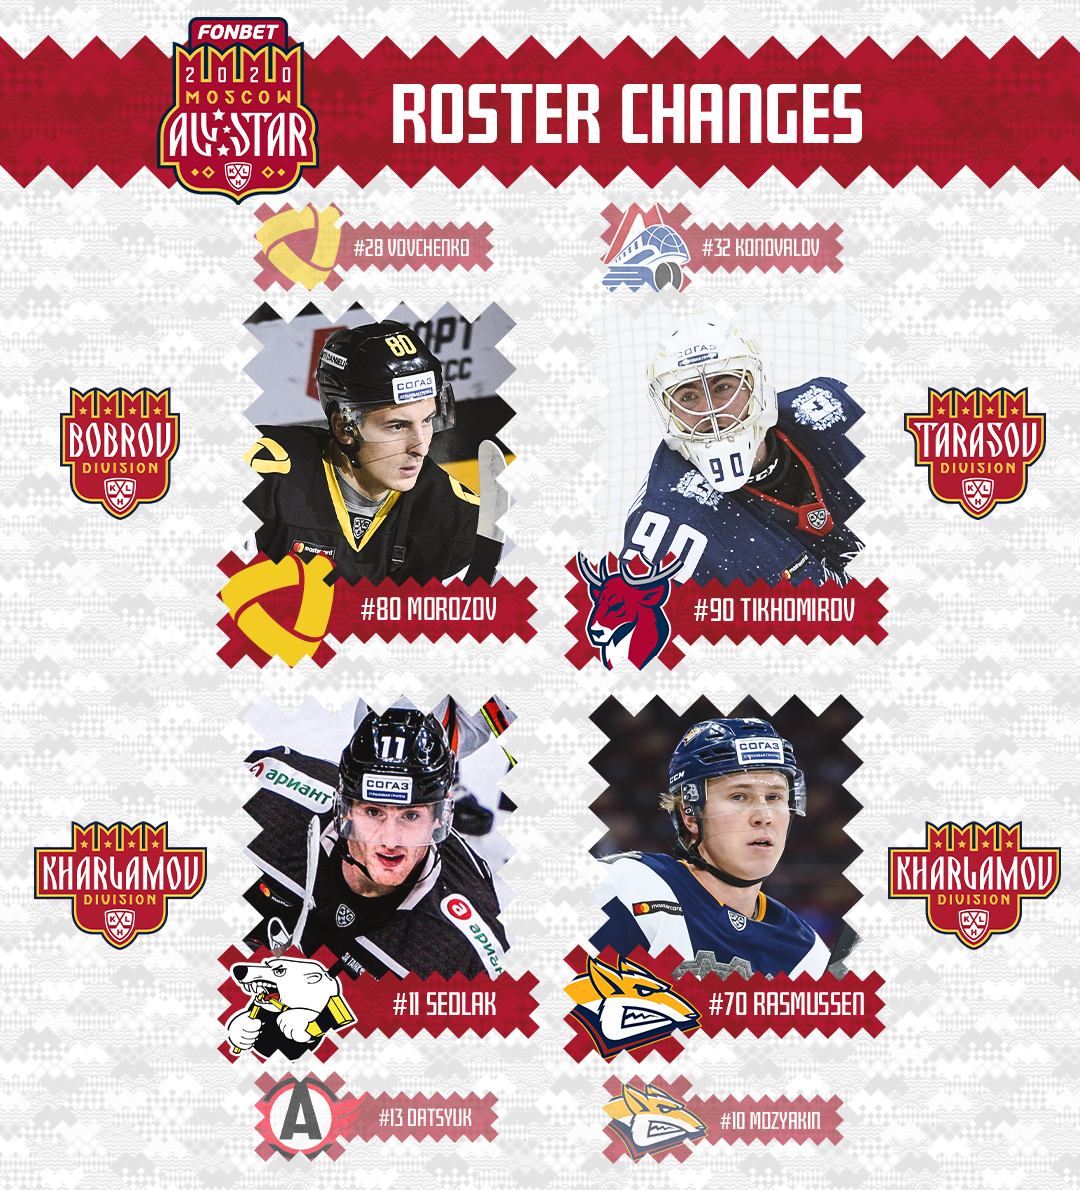 4_Changes_Roster_ENG.jpg